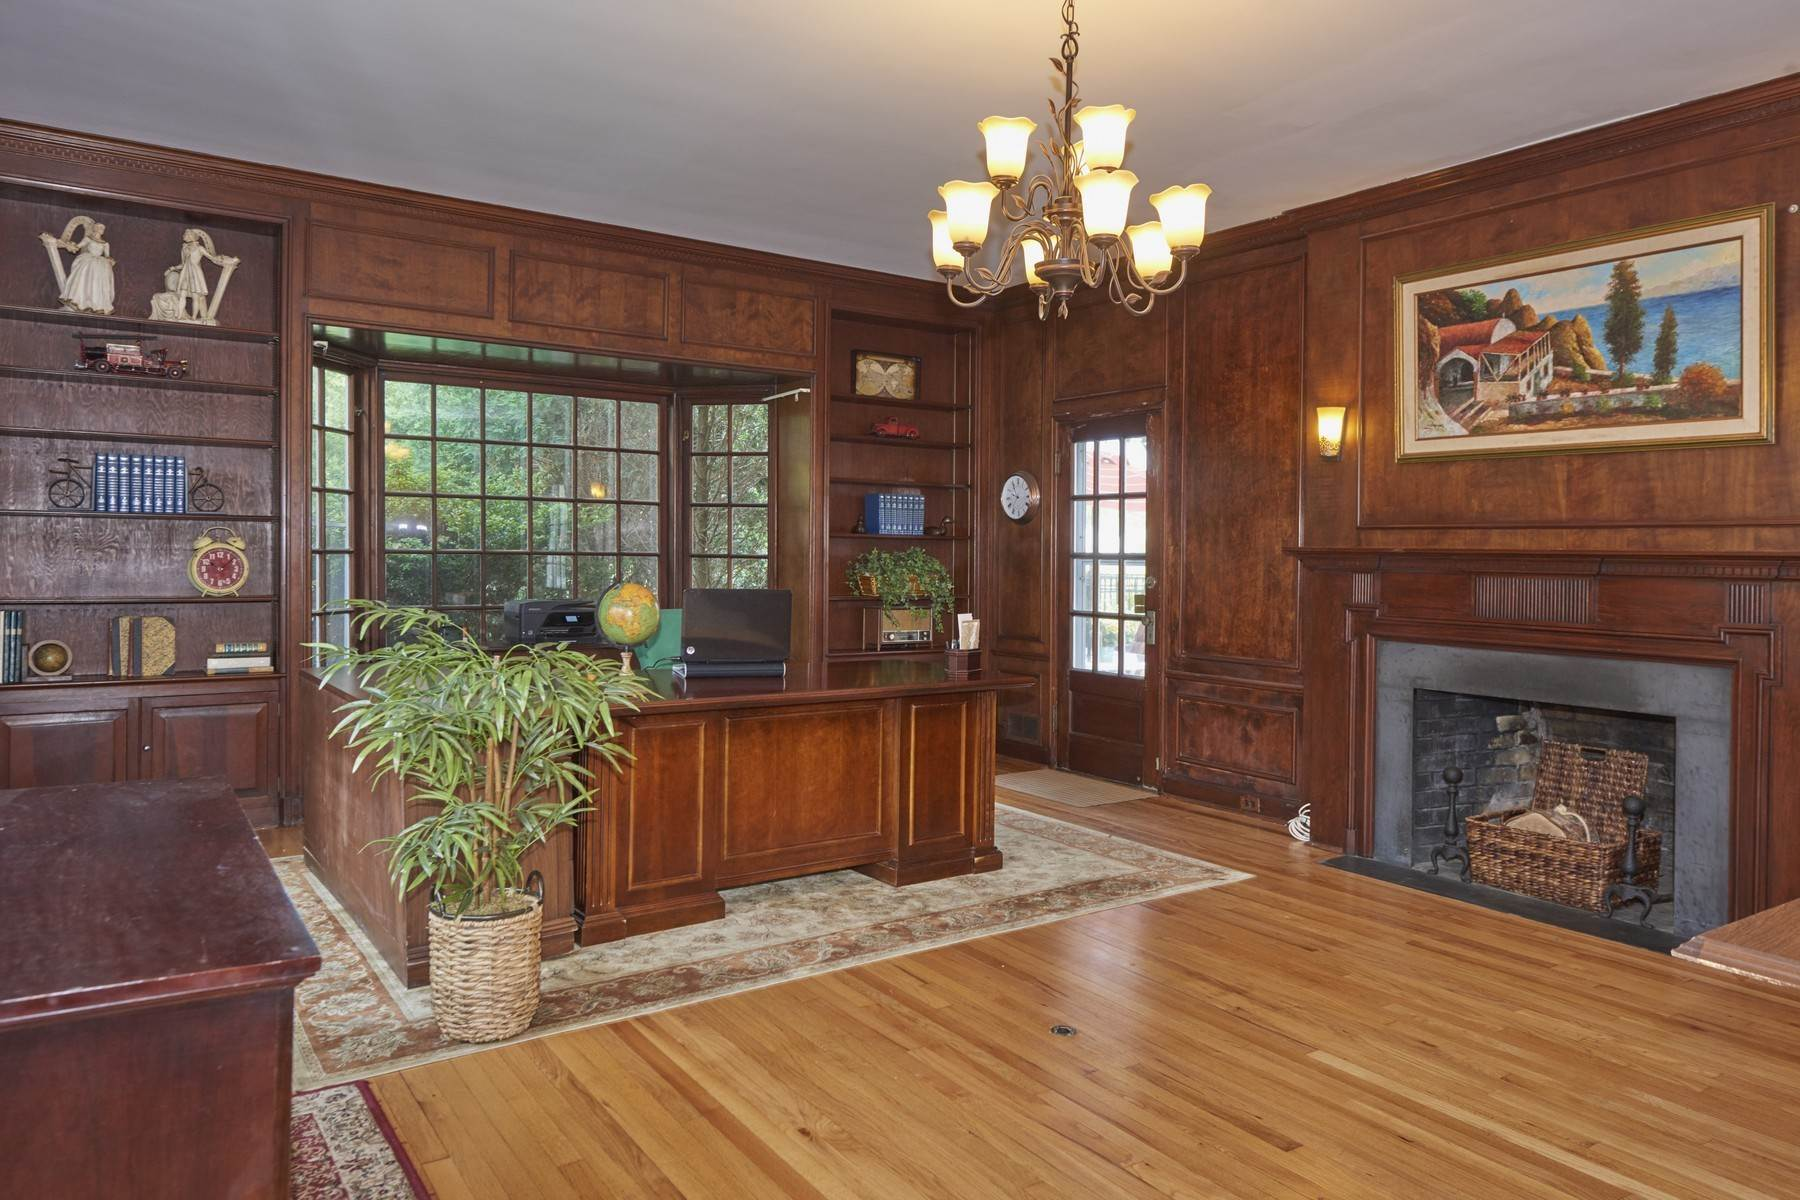 8. Single Family Homes for Sale at 420 Sycamore Avenue Shrewsbury, New Jersey 07702 United States